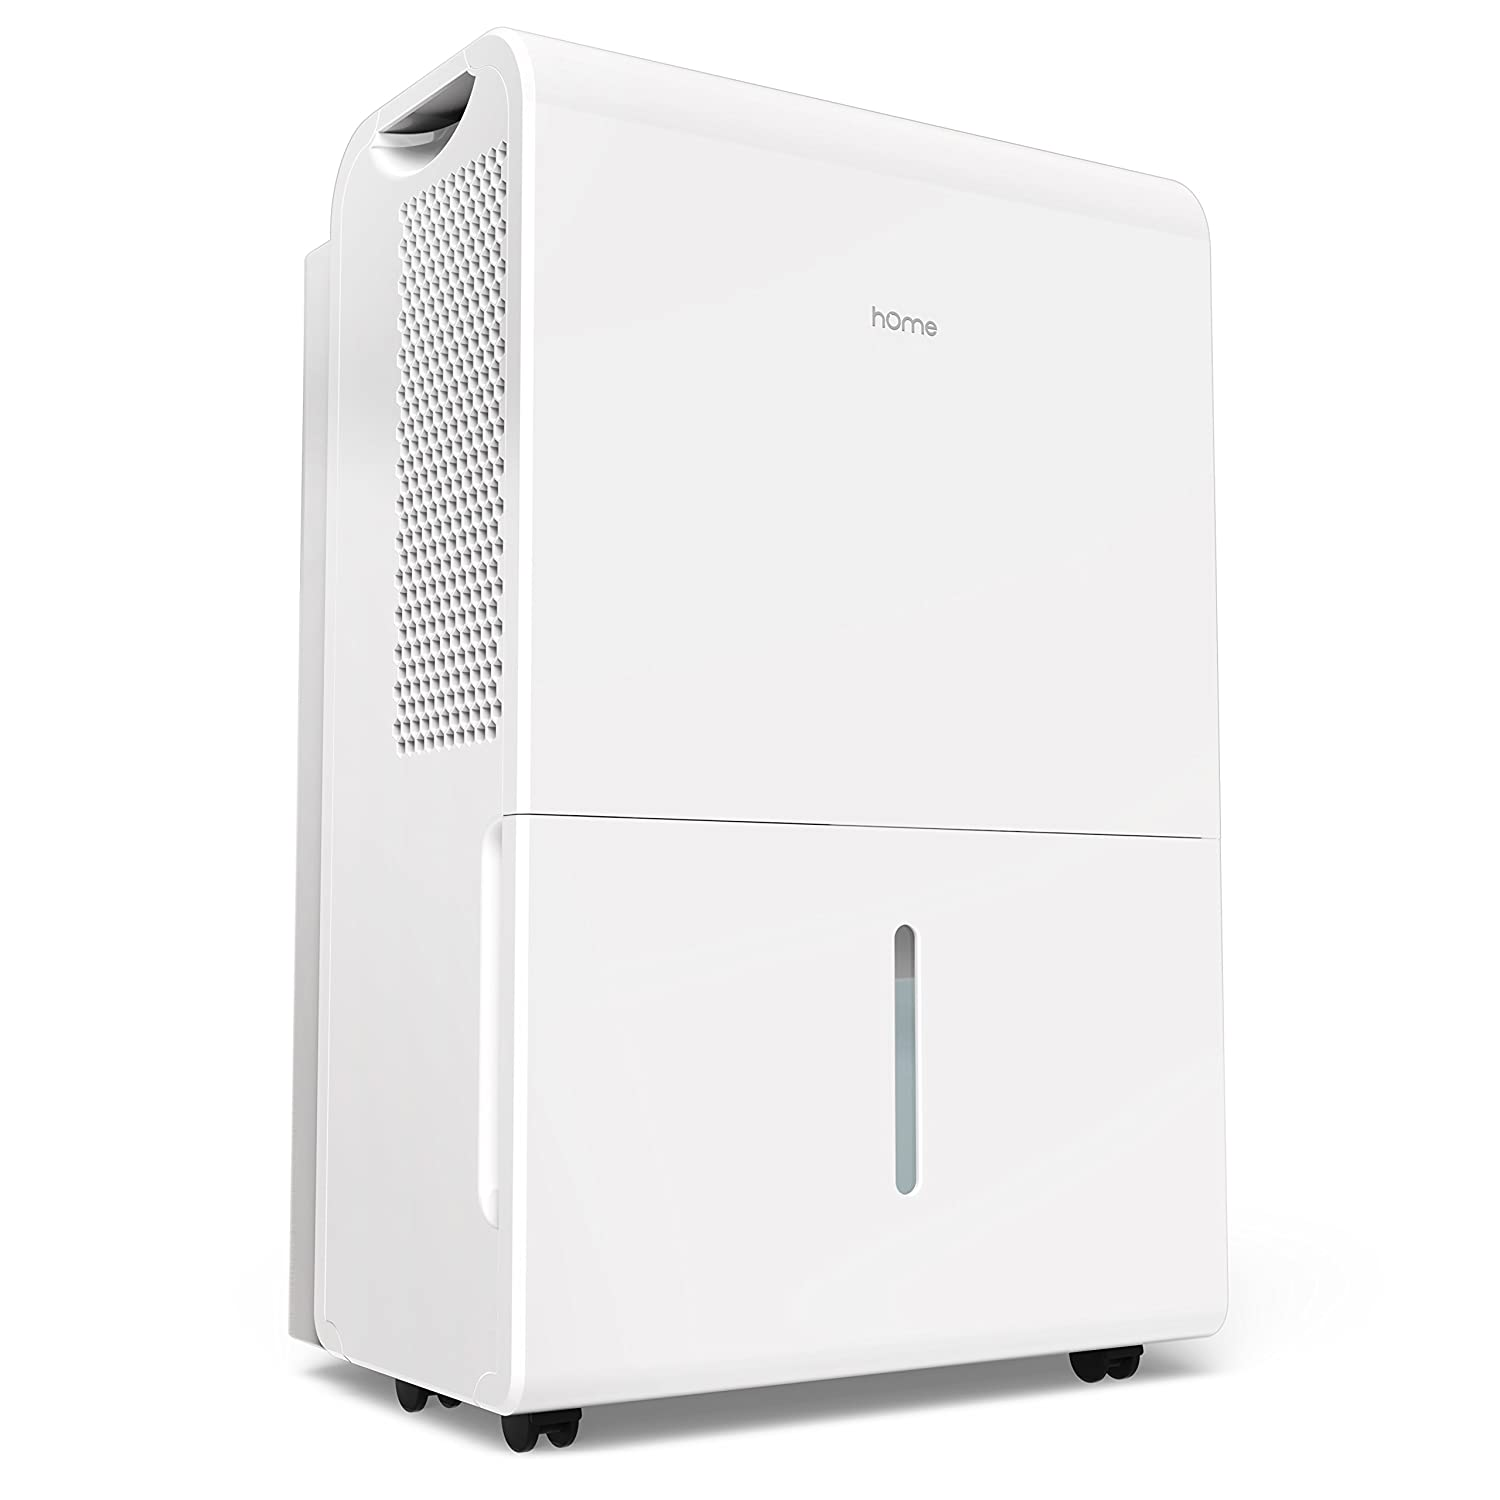 hOmeLabs 2500 Sq Ft Dehumidifier 50 Pint Energy Star Safe Mid Size Portable Dehumidifiers for Basements & Large Rooms with Fan Wheels and Drain Hose Outlet to Remove Odor & Allergens HME020006N